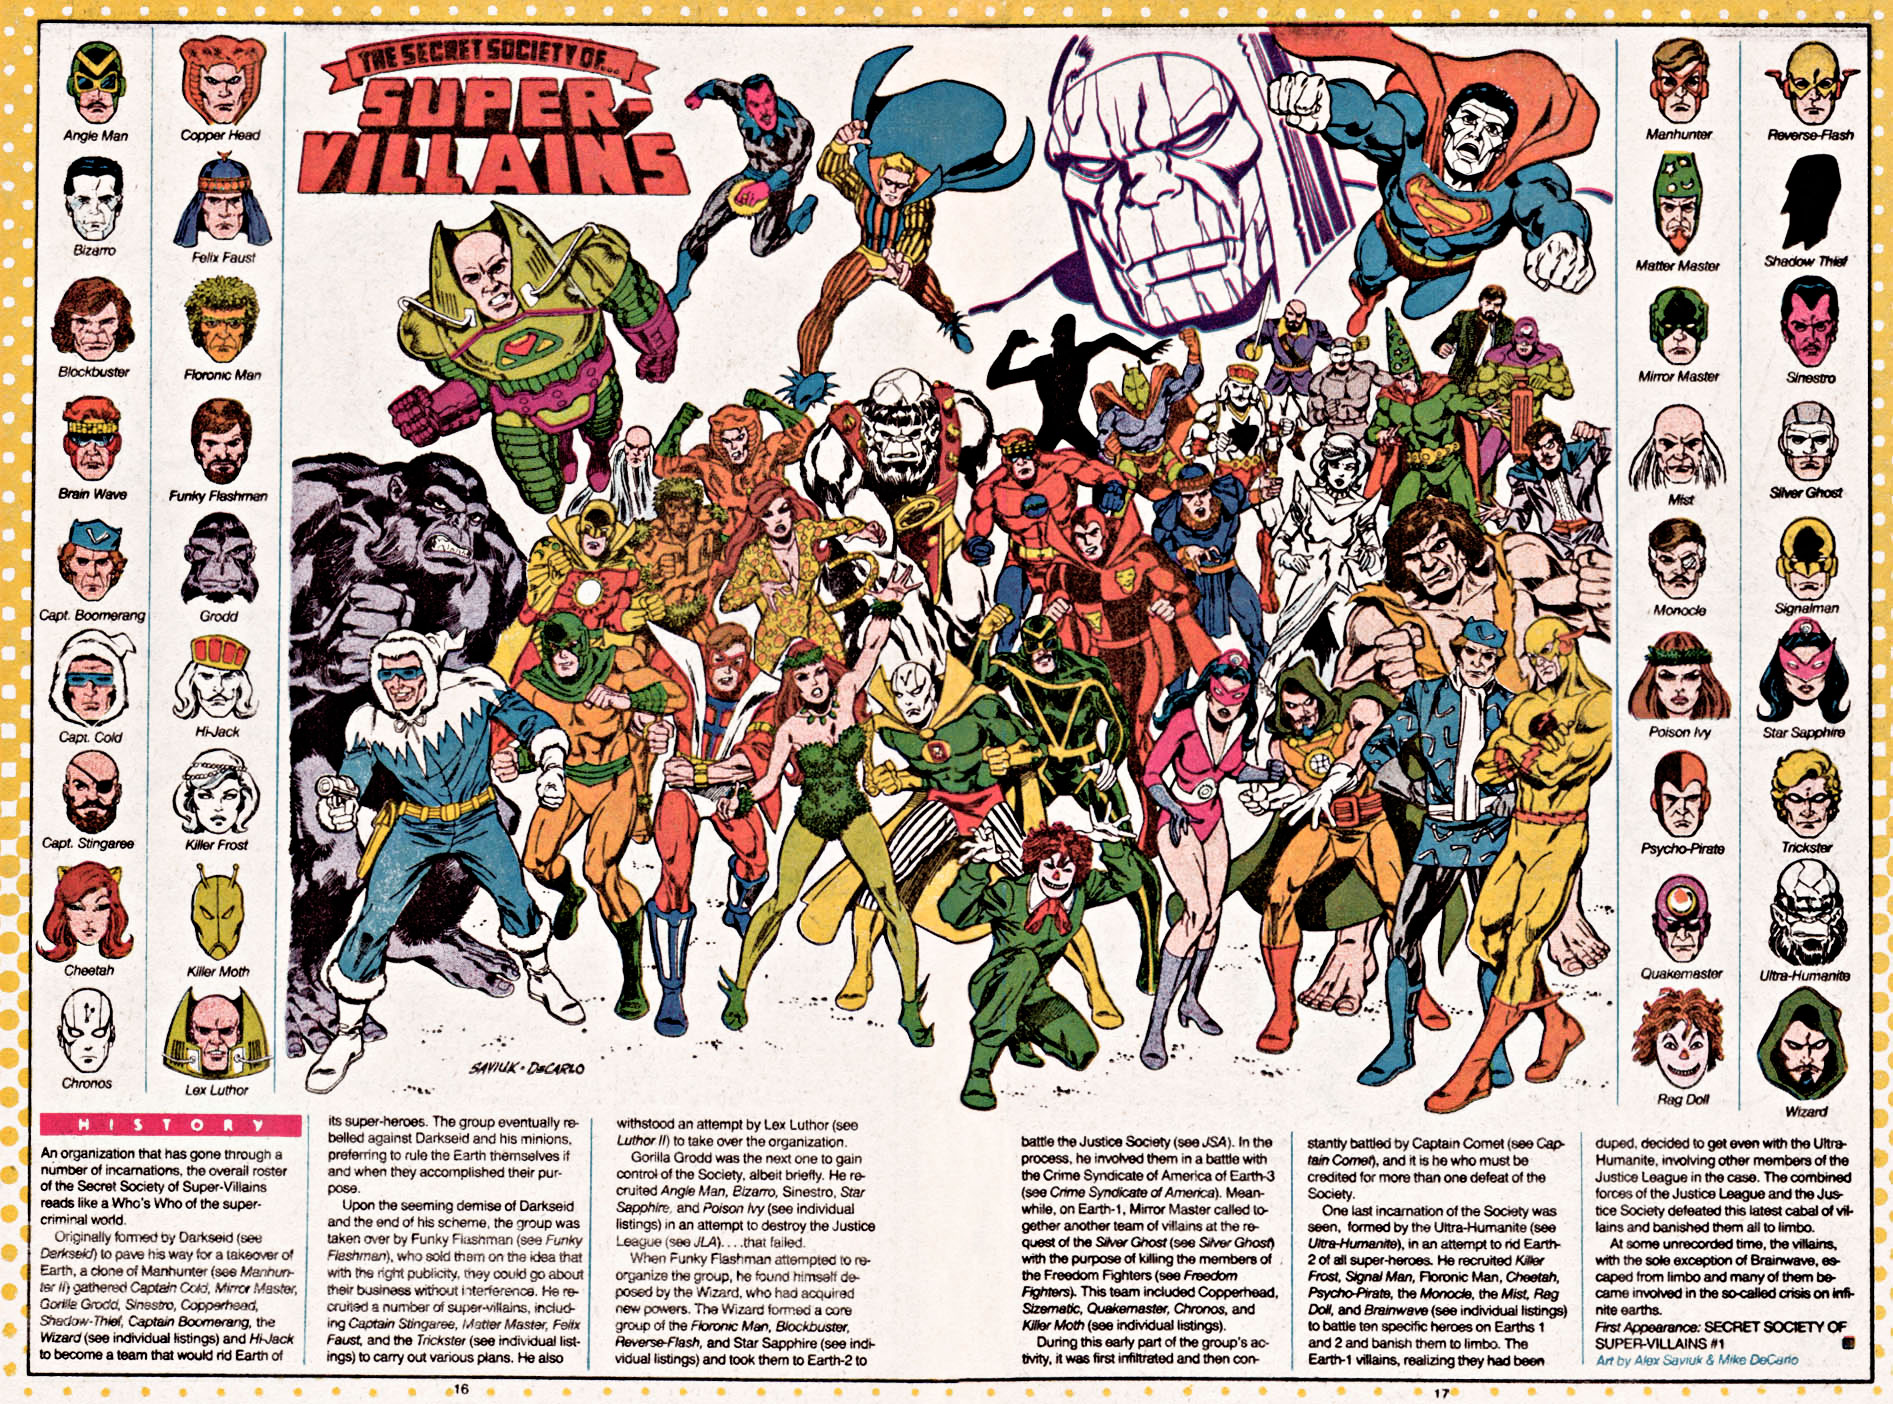 Secret Society of Super-Villains from Who's Who drawn by Alex Saviuk & Mike DeCarlo